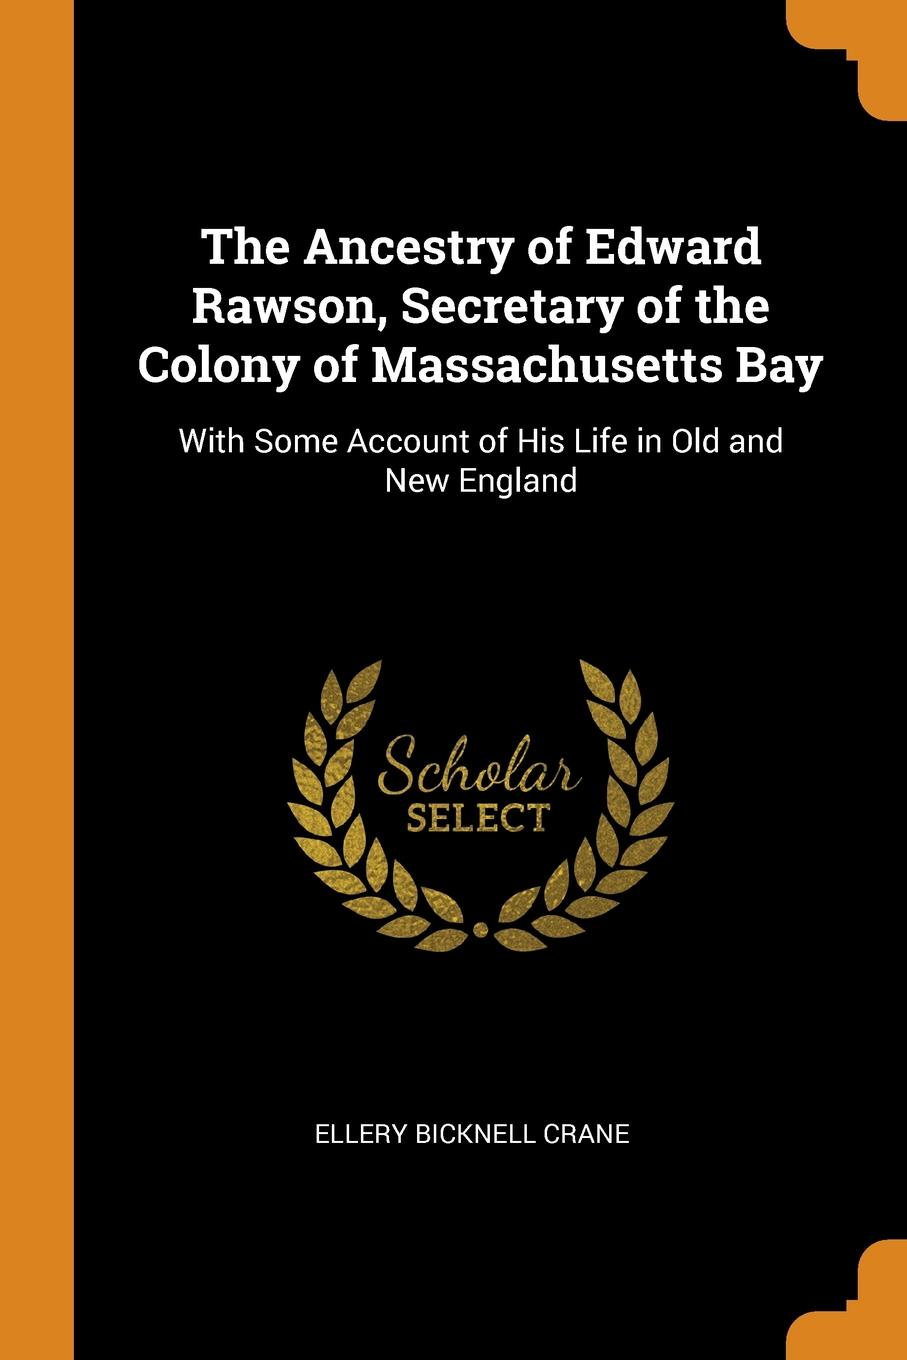 Ellery Bicknell Crane. The Ancestry of Edward Rawson, Secretary of the Colony of Massachusetts Bay. With Some Account of His Life in Old and New England